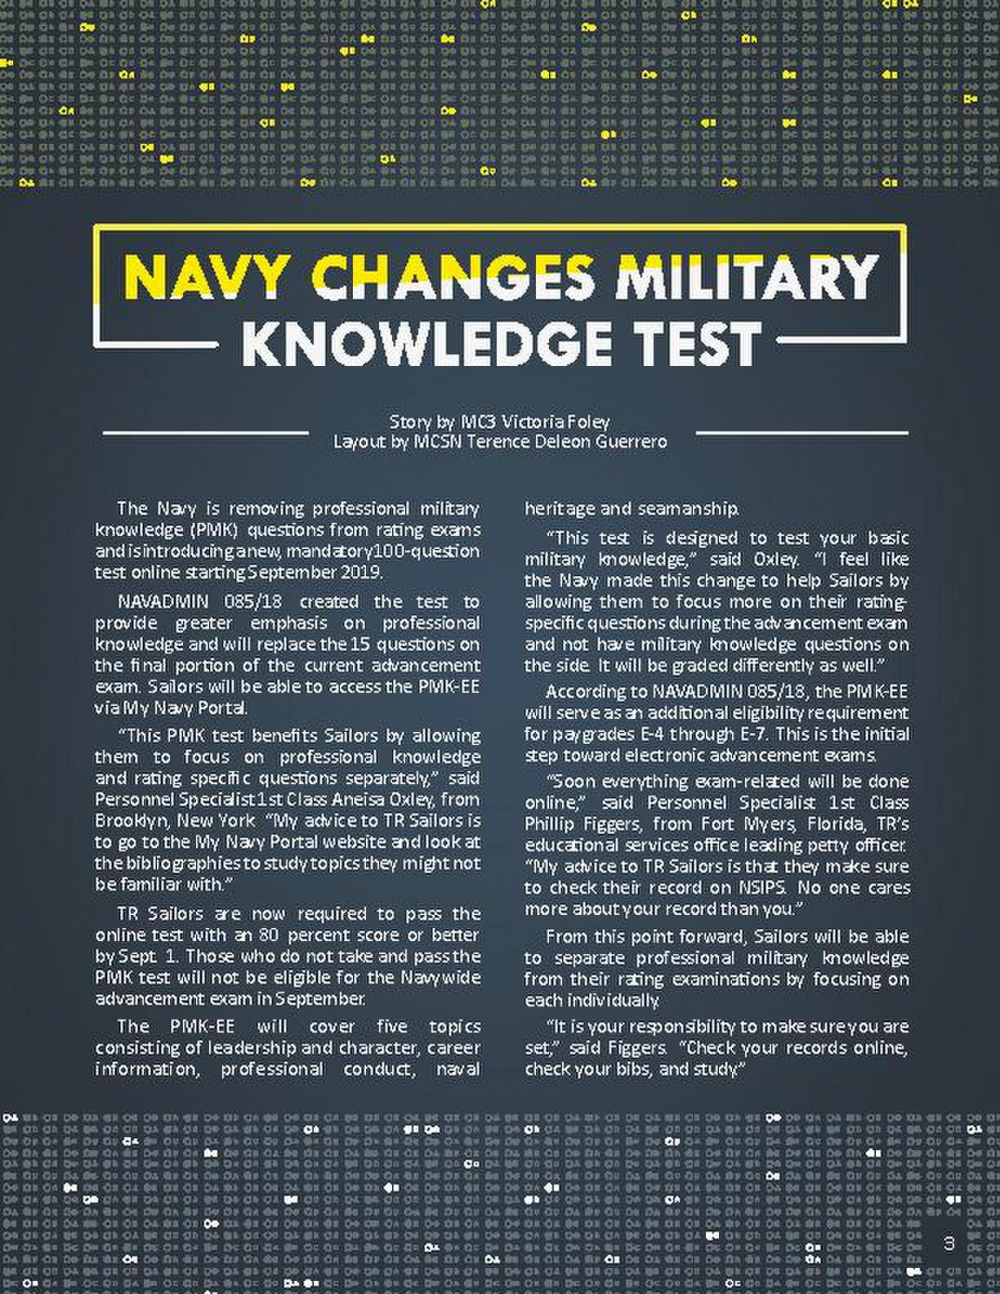 Navy Changes Military Knowledge Test